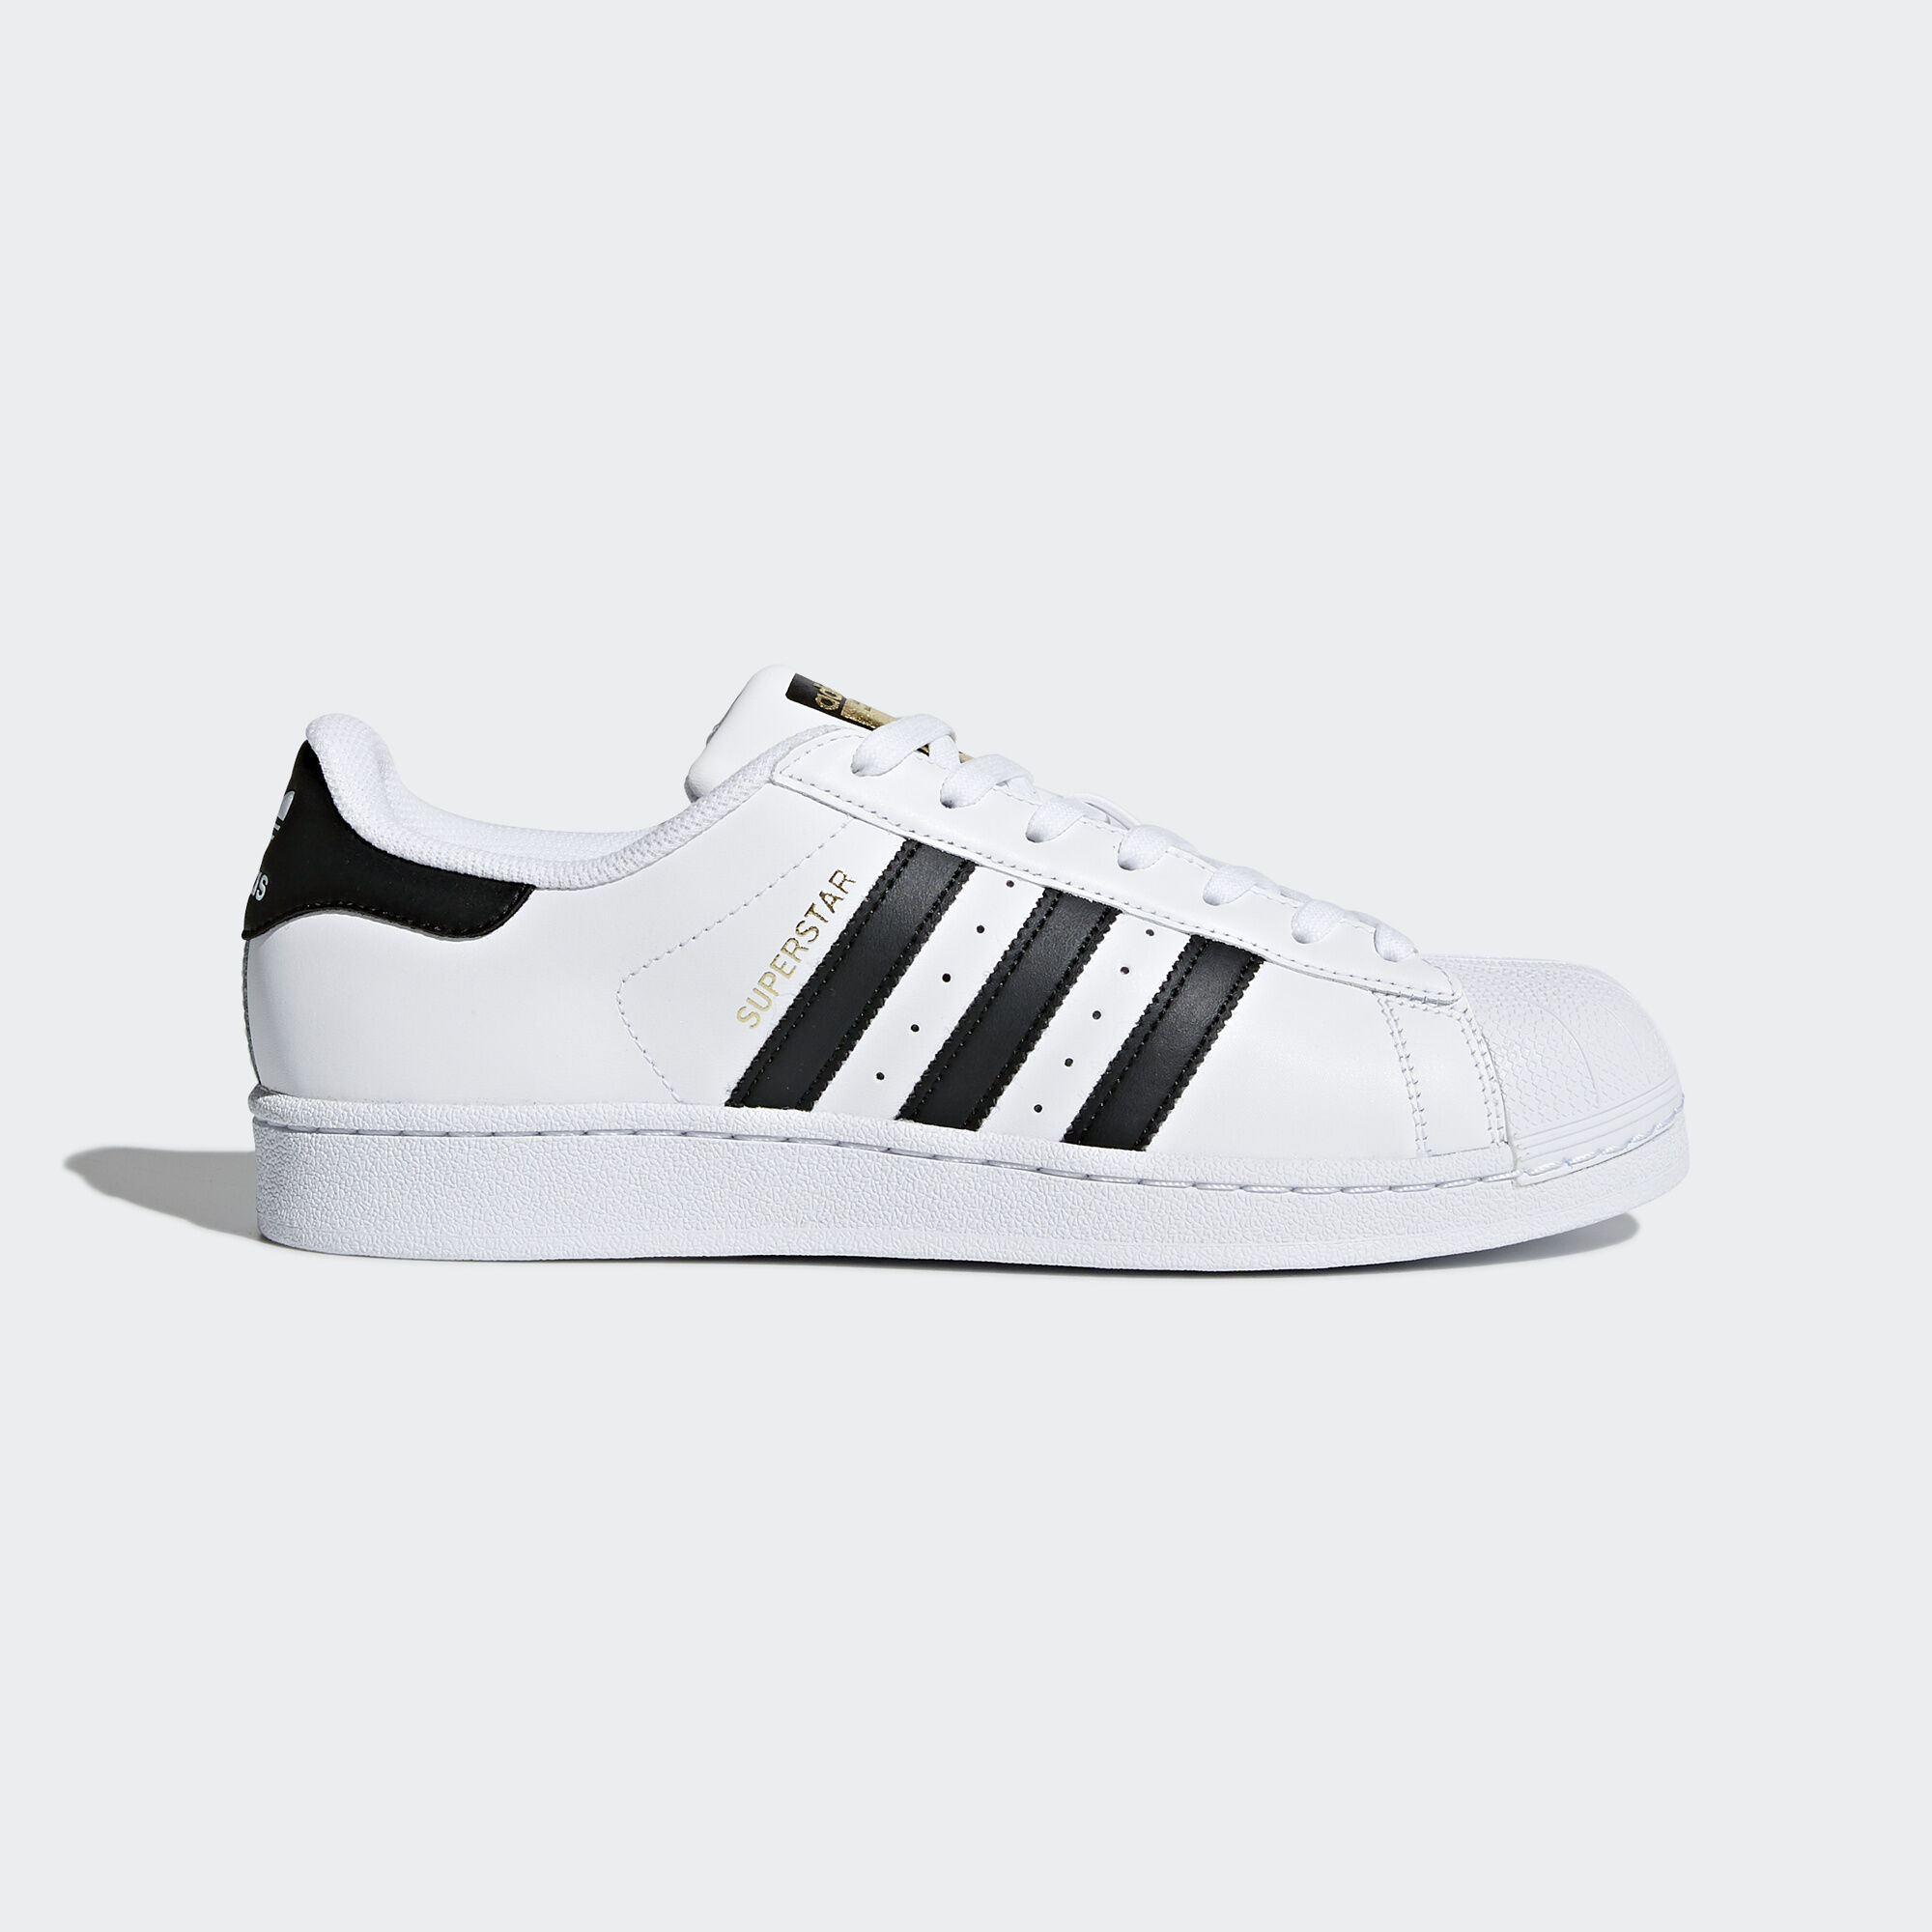 adidas originals official website adidas shoes usa online